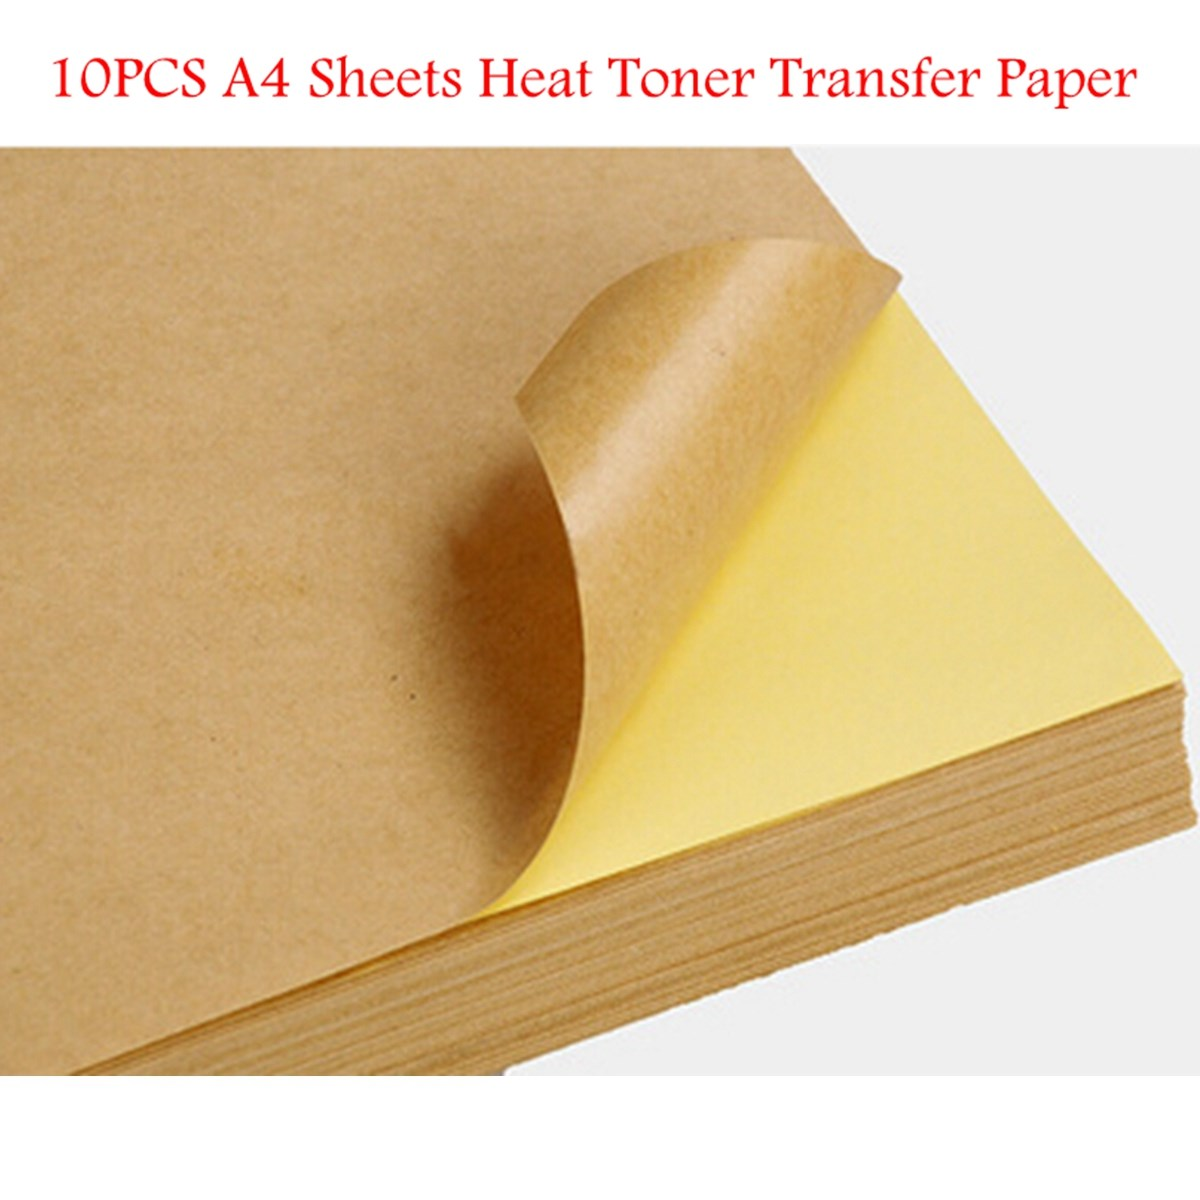 10pcs/lot Overvalue And Hot Sale Kraft Paper Heat Toner Transfer A4 Sheets Brown Kraft Printing Copy Label Paper(China (Mainland))